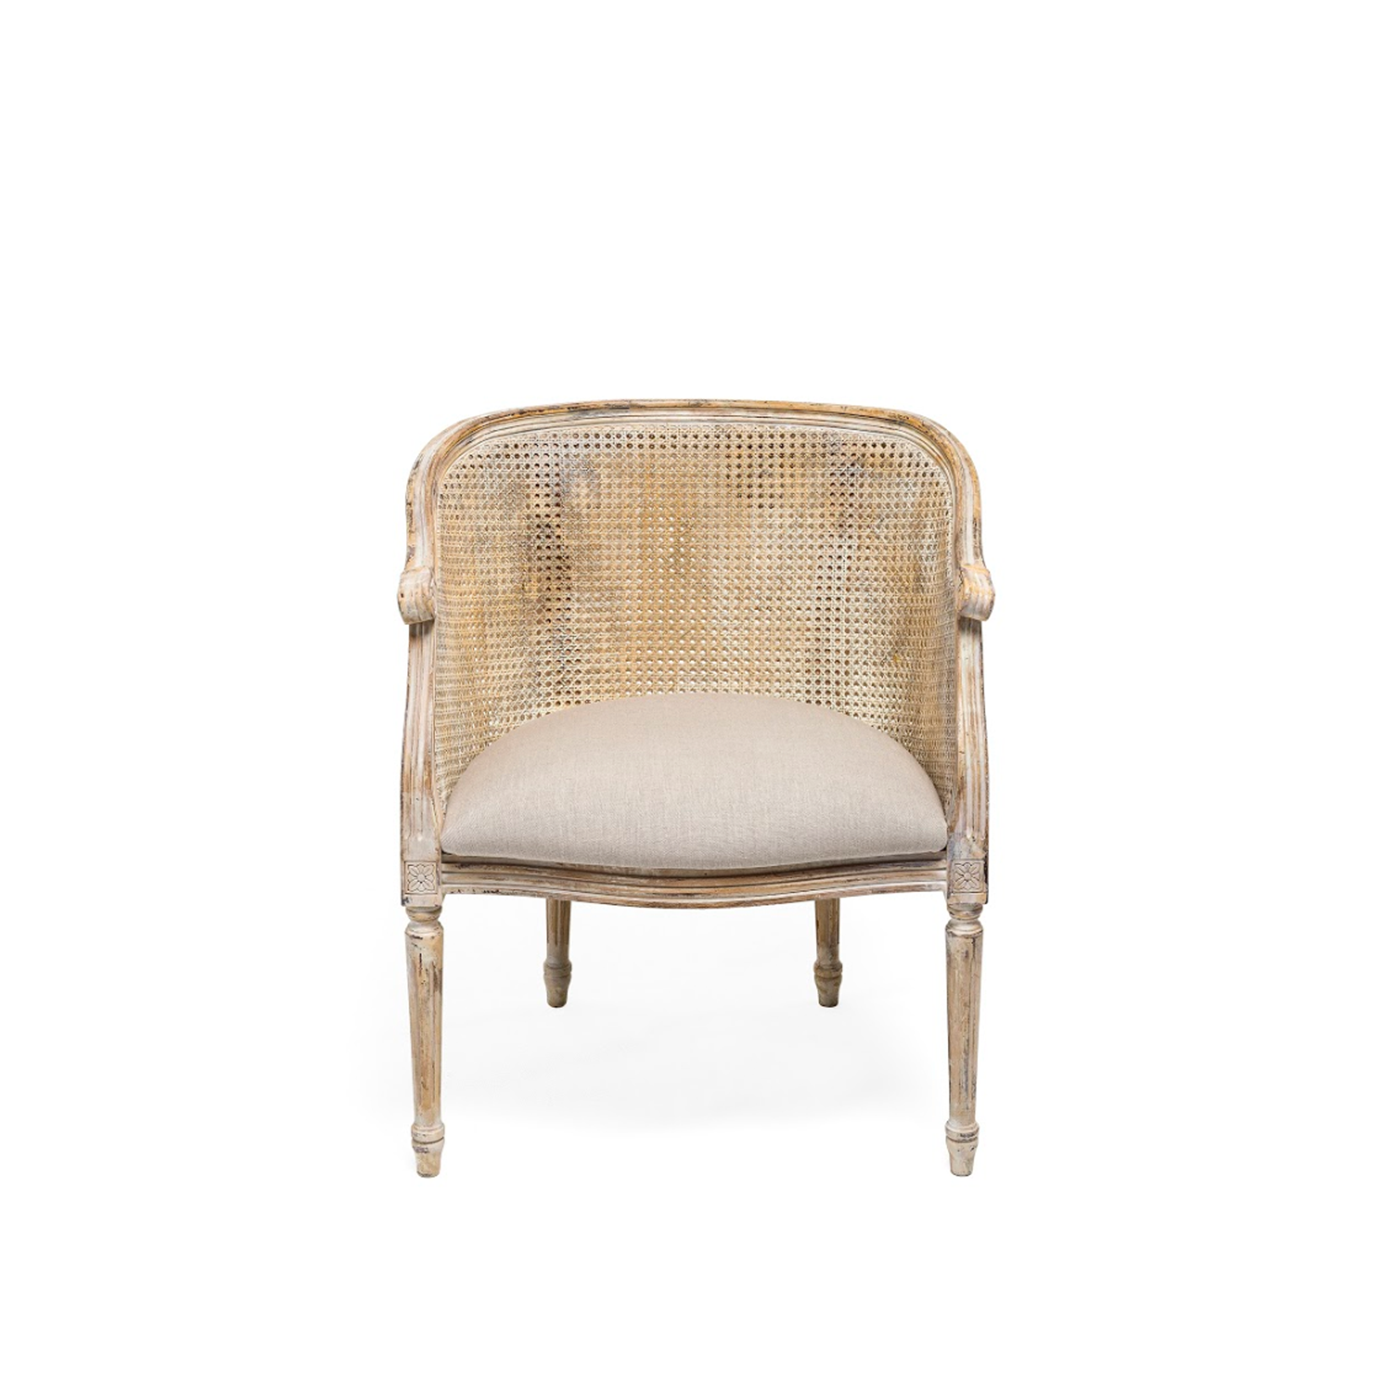 Louis XVI Tub Chair (Code 7363) Caned Image